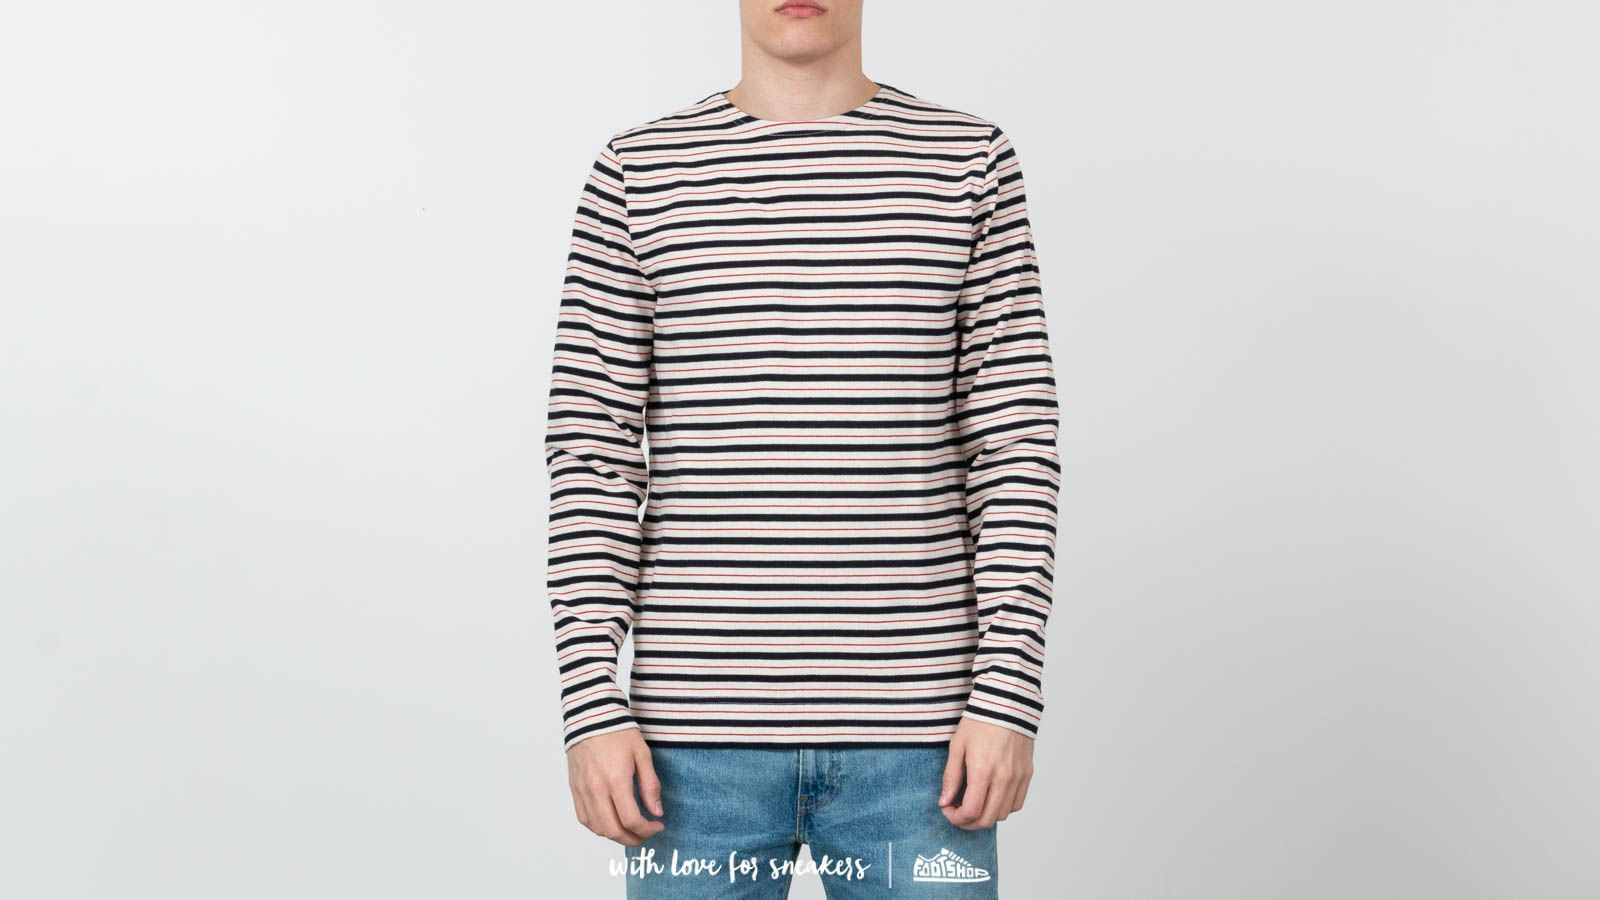 T-shirts Norse Projects Godtfred Classic Compact Longsleeve Tee Multi Stripe Askja Red